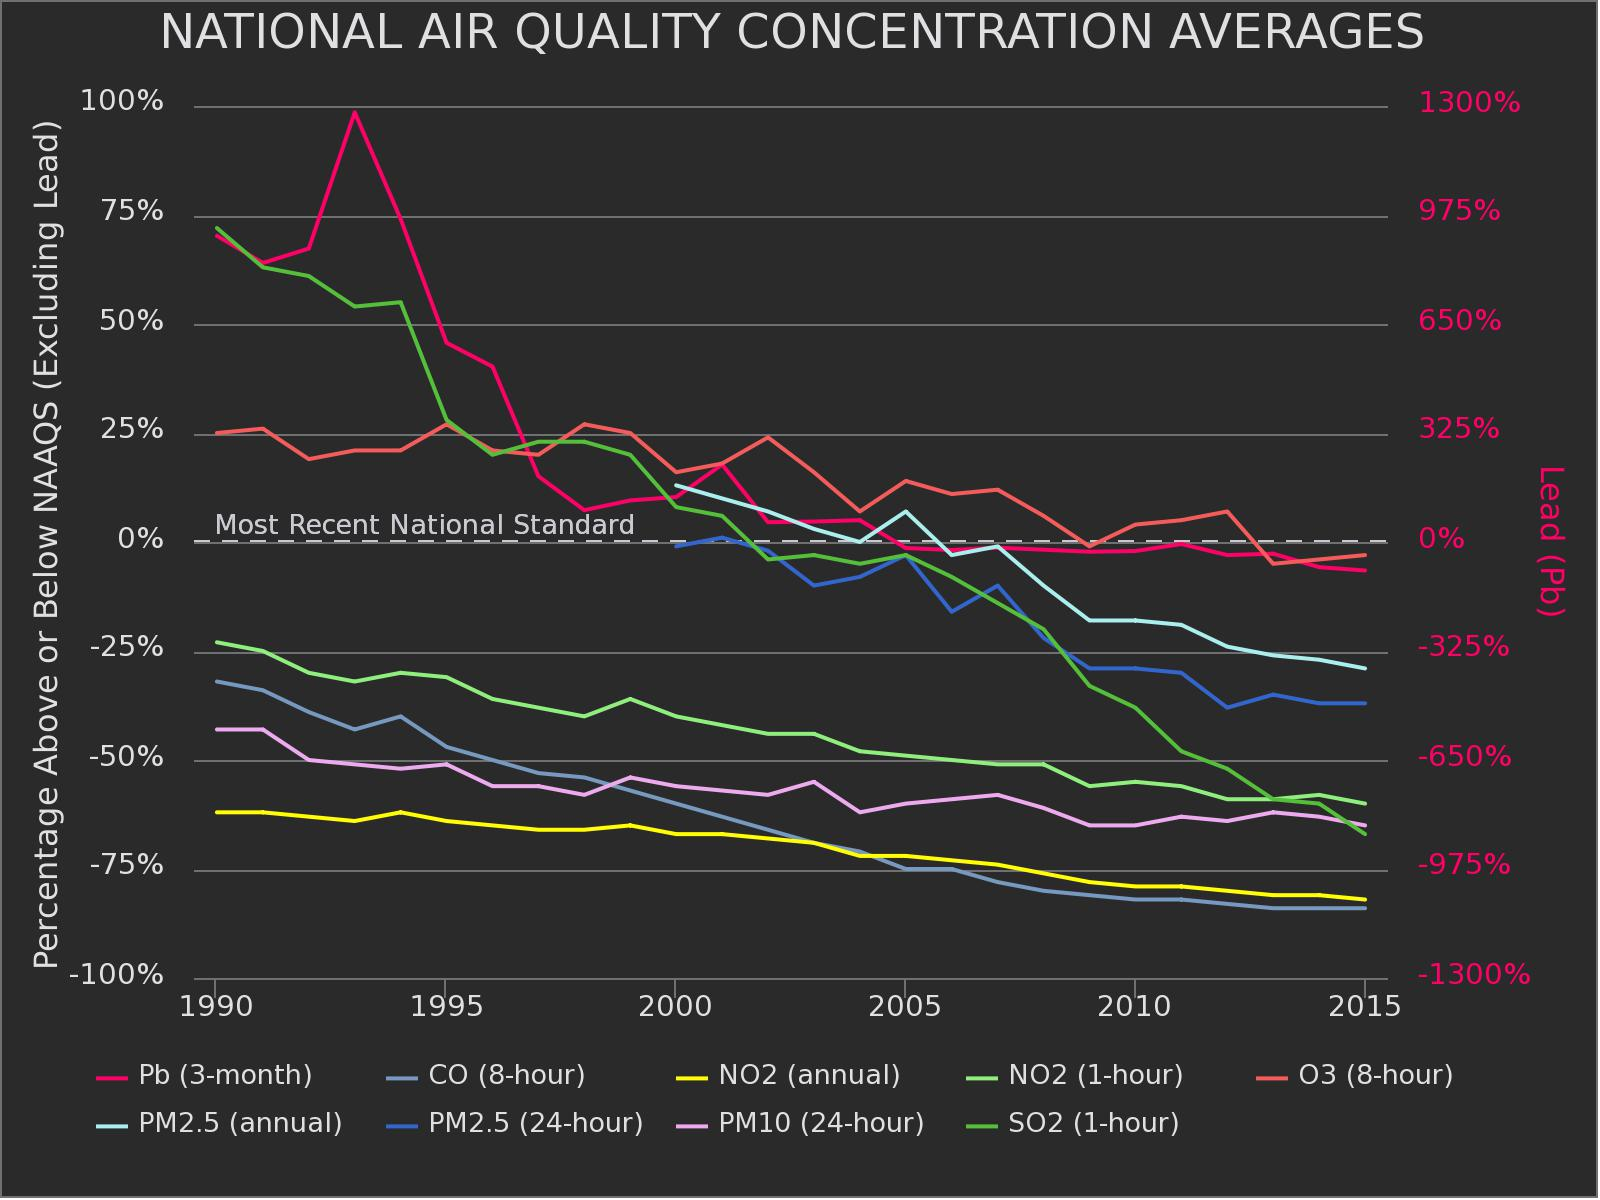 US air quality trends 1990-2015